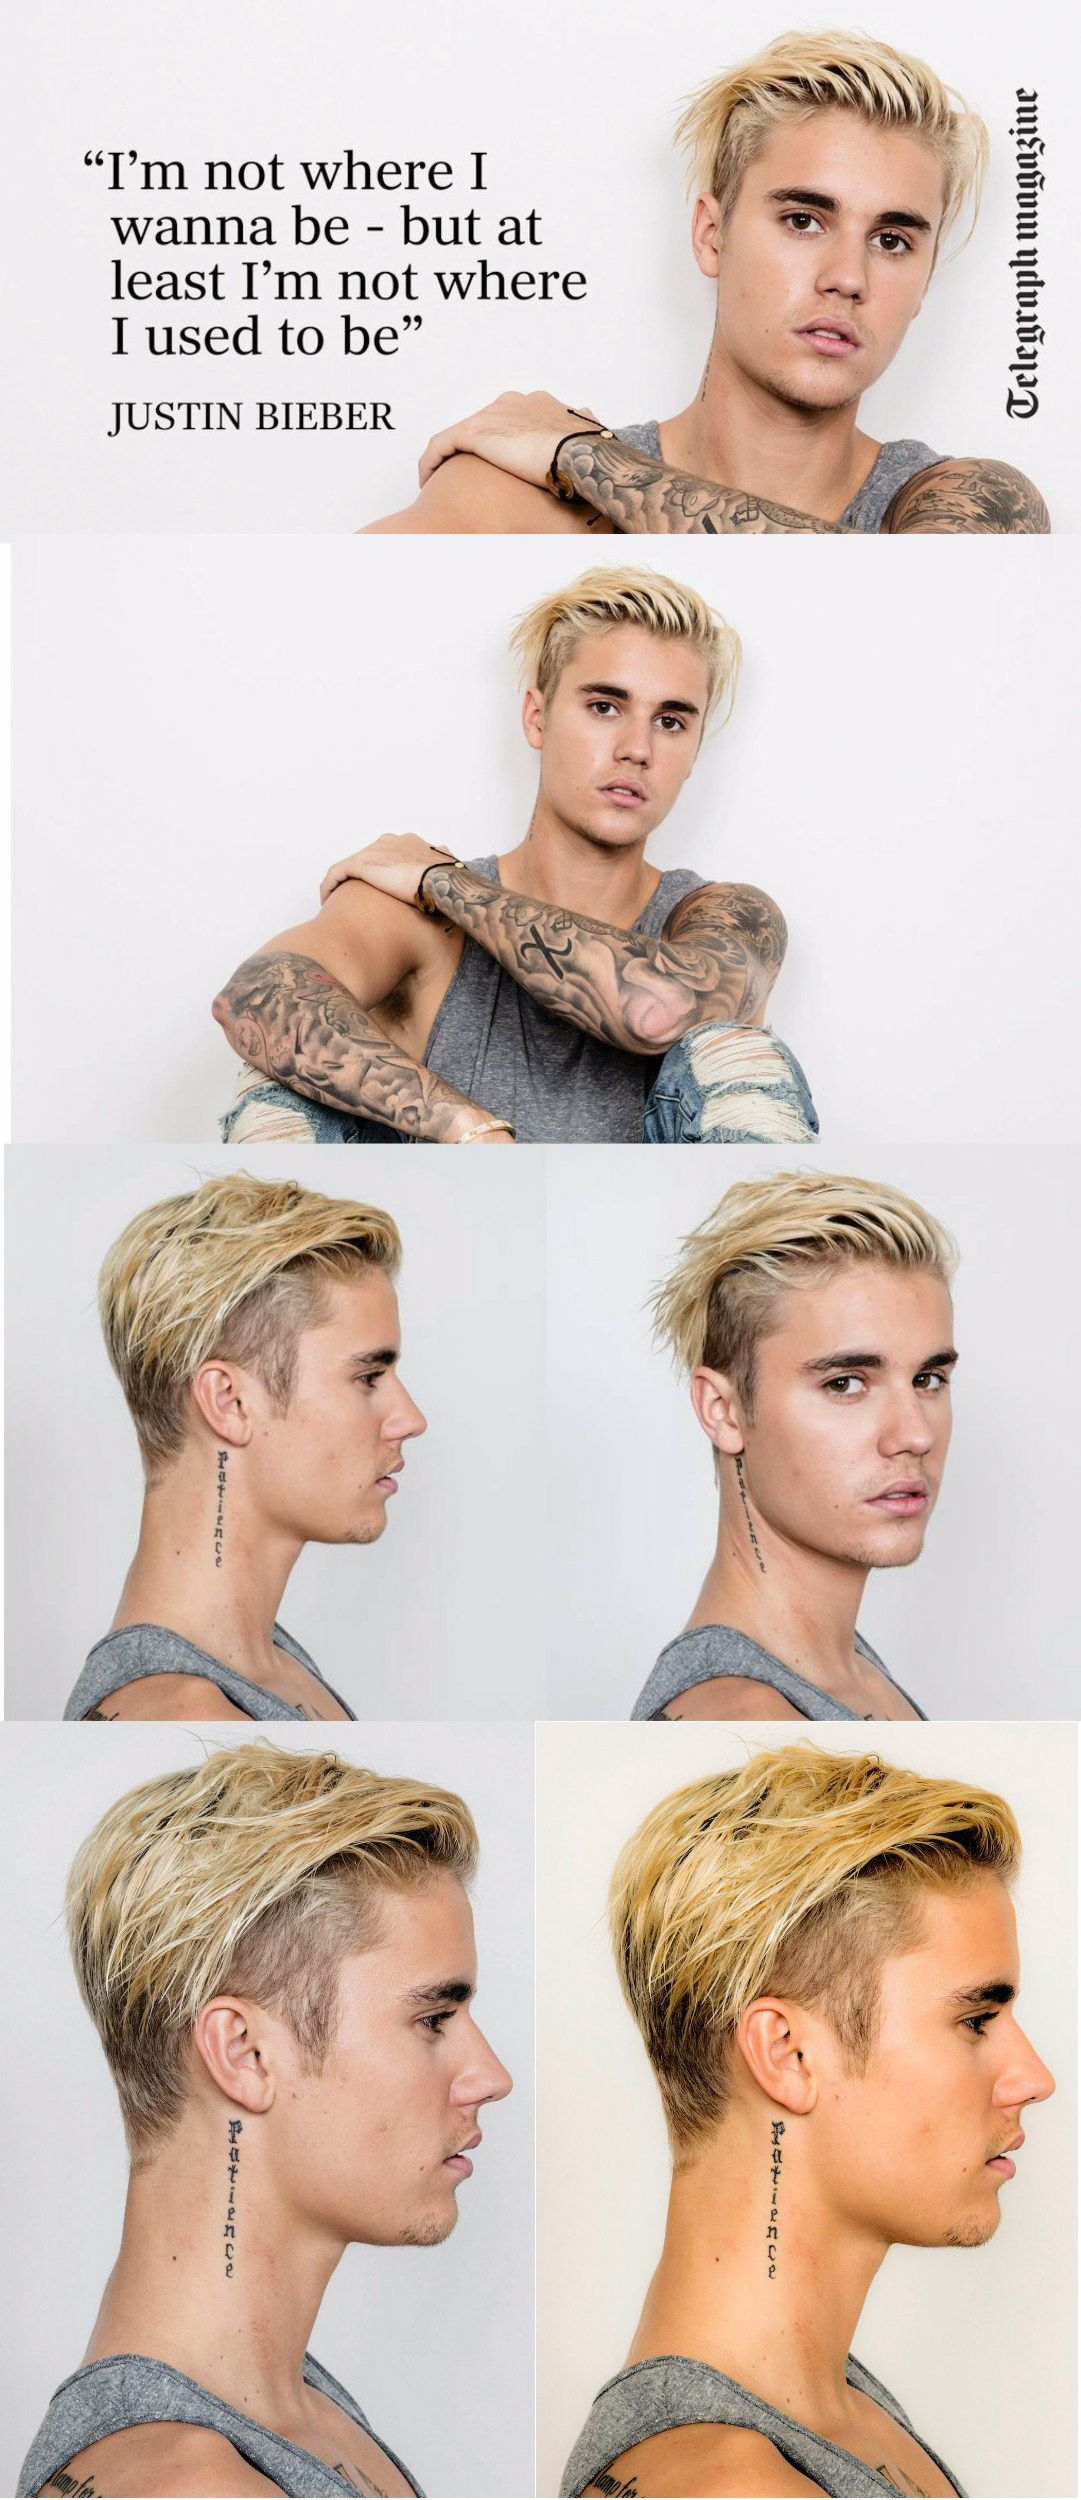 Tumblr iphone wallpaper justin bieber -  Justinbieber Collections 2015 Https Plus Google Com